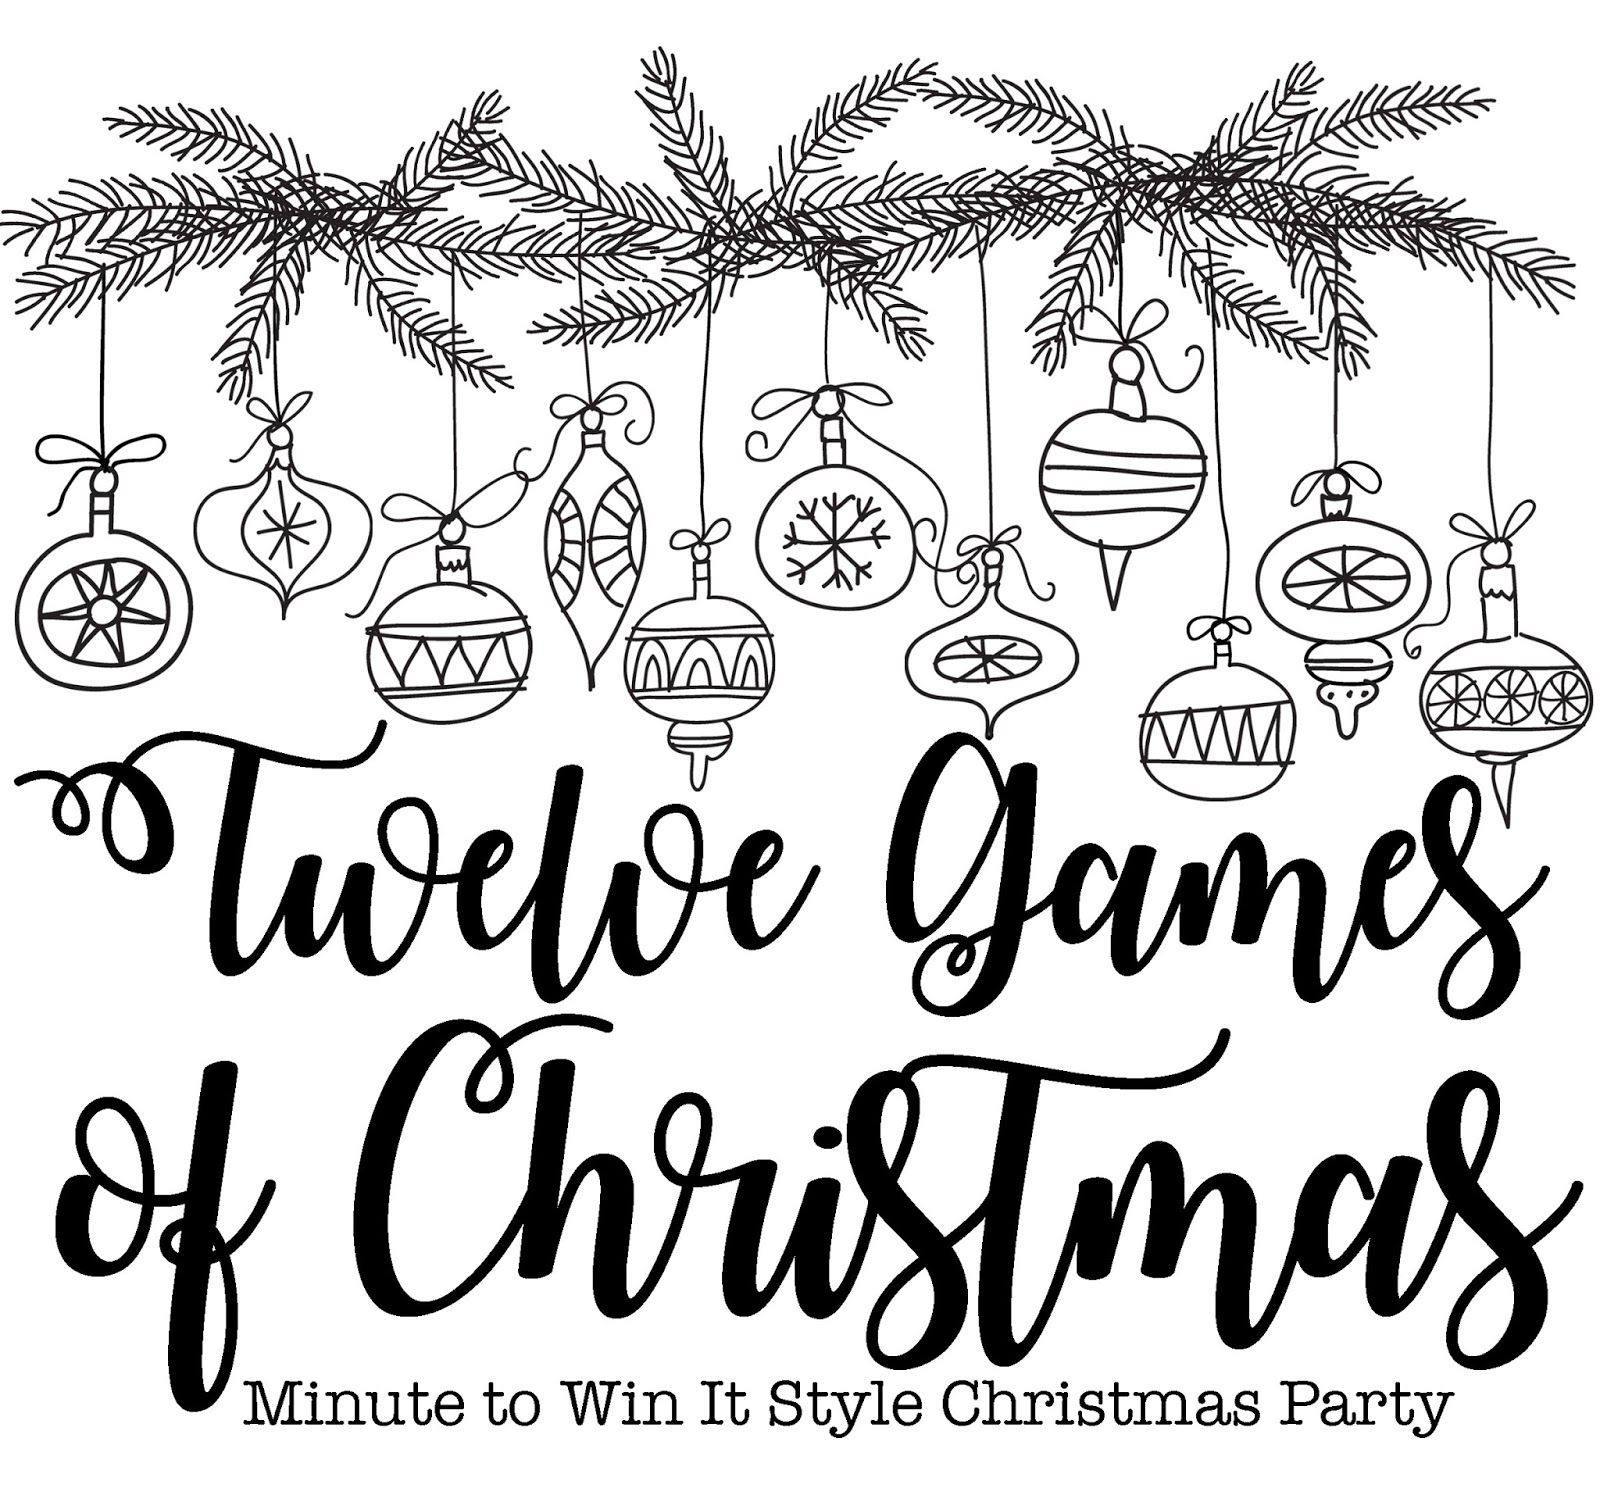 12 games of christmas momfessionals christmas pinterest Toddler Scavenger Hunt Clues Printable last night was our sunday school class s annual christmas party and we hang out eat and play 12 games of christmas we do 12 little minute to win it